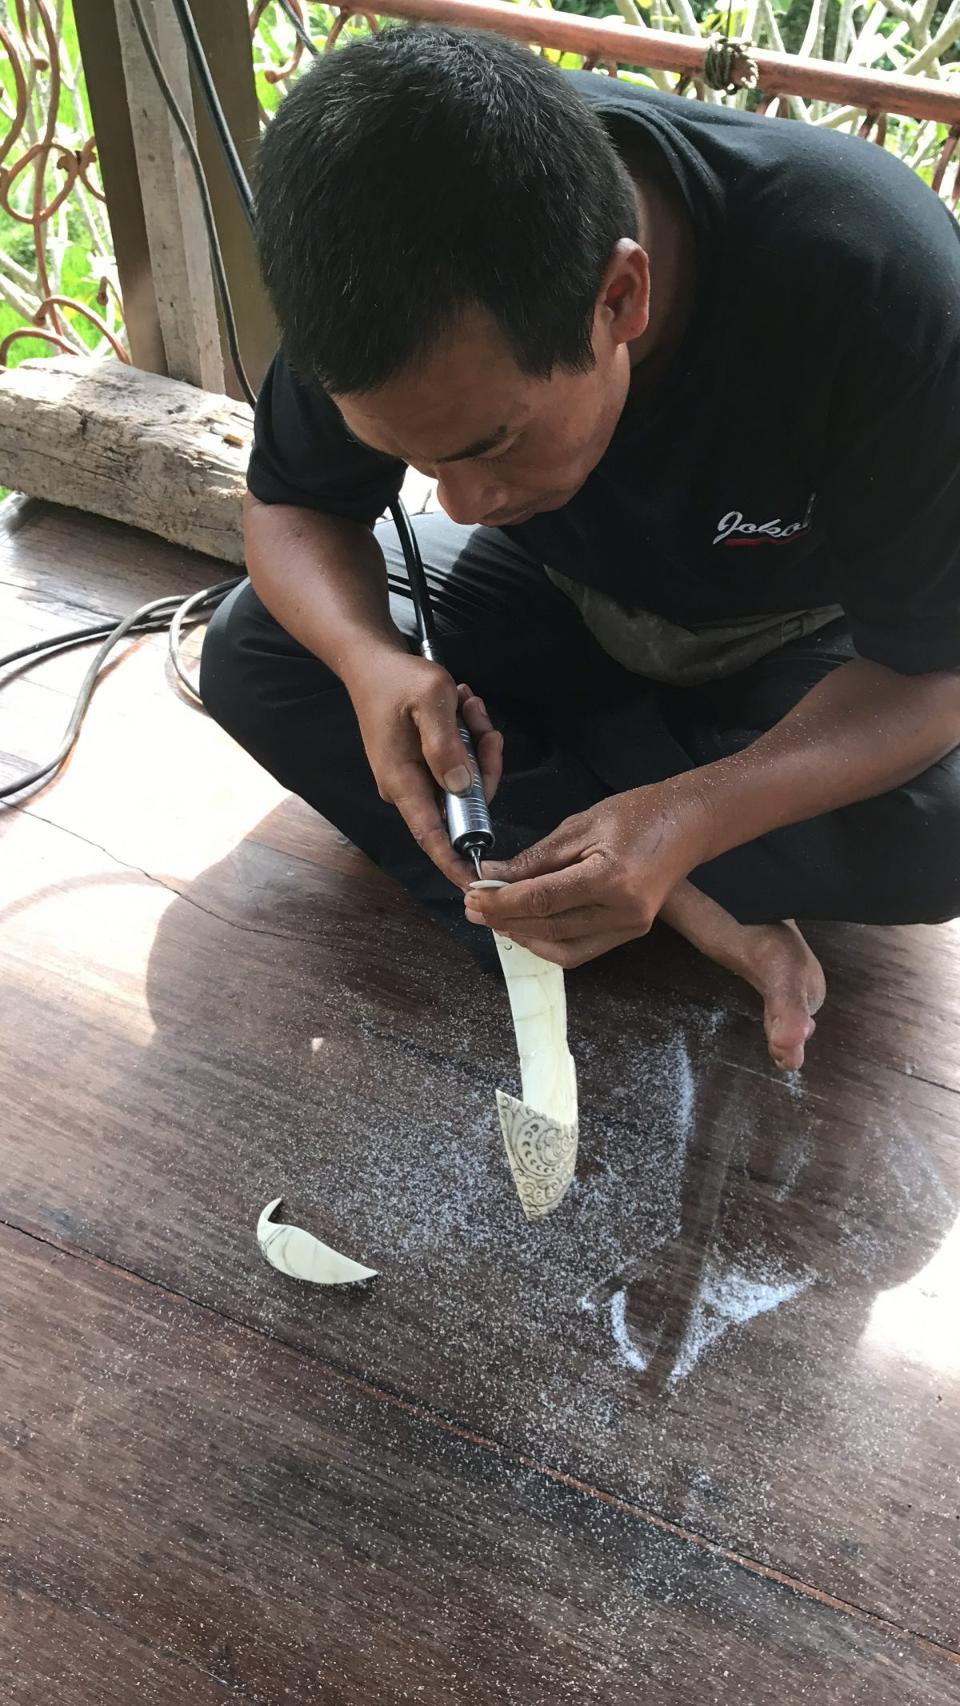 A Balinese craftsman working with Tagua for a Bali-inspired jewel